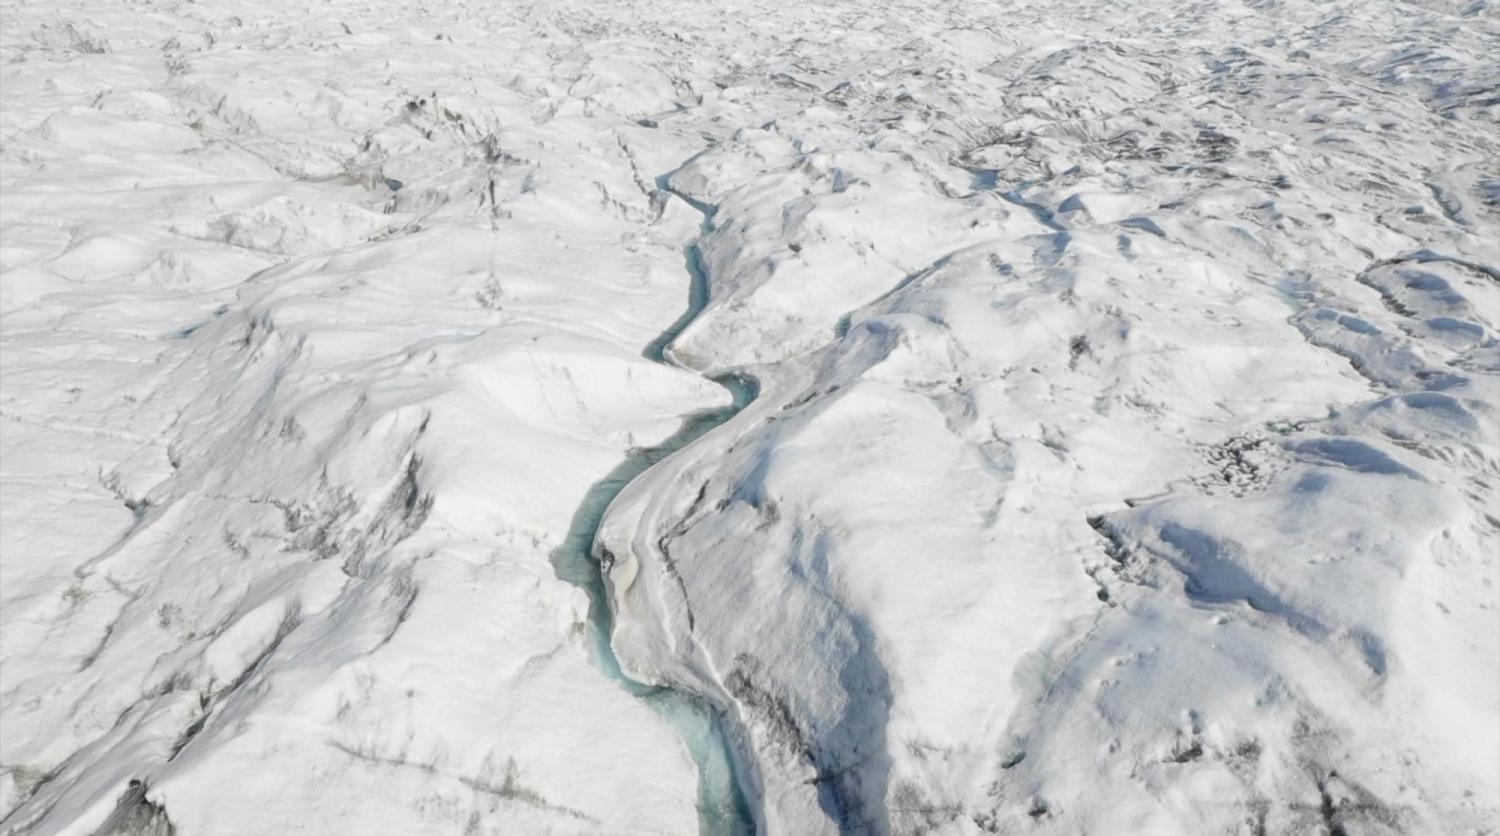 Overhead view of Greenland's ice fjords.